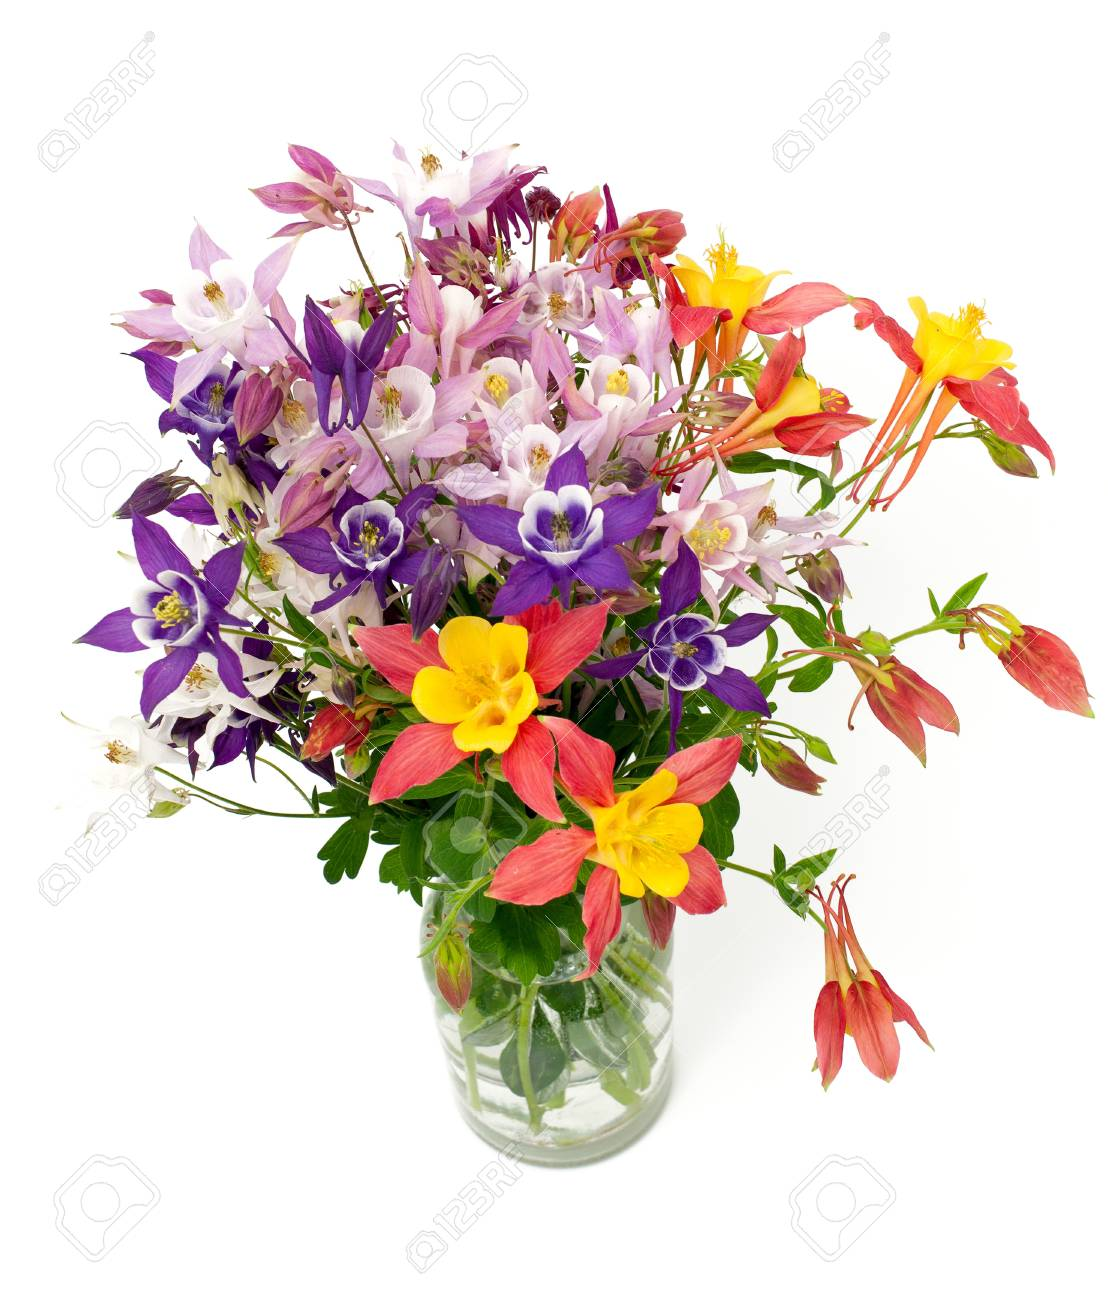 Columbine flowers of different colors over white stock photo columbine flowers of different colors over white stock photo 20730771 izmirmasajfo